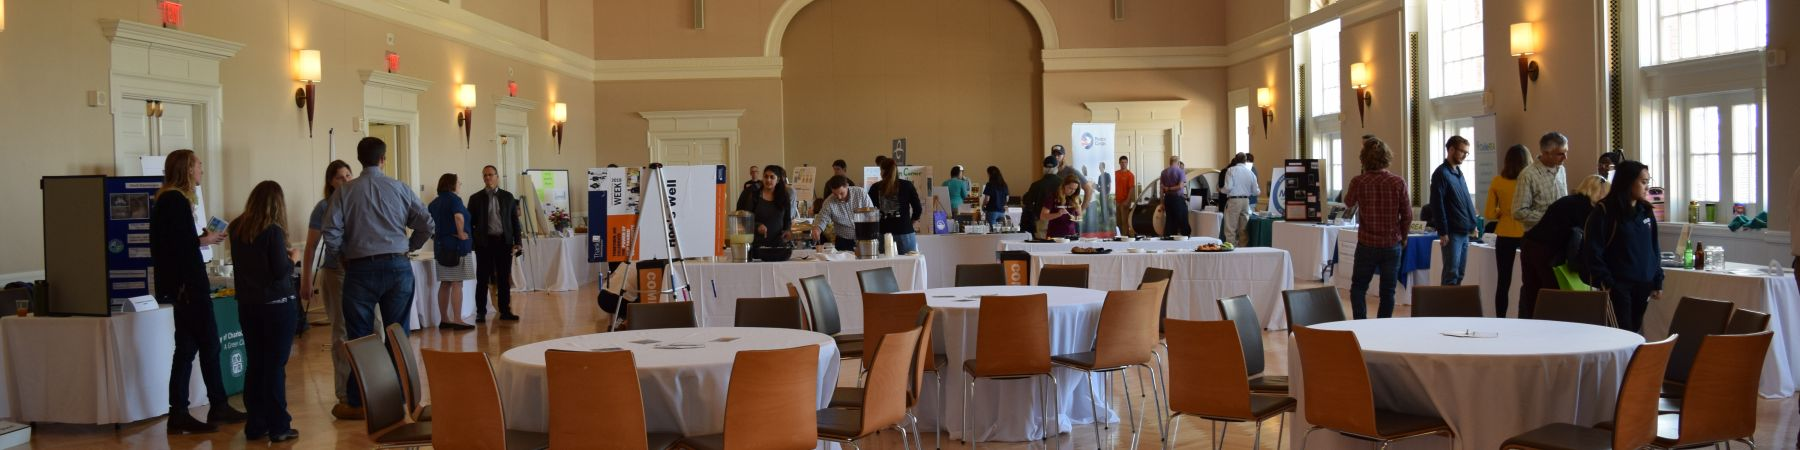 Newcomb Ballroom with Earth Week expo attendees at tables